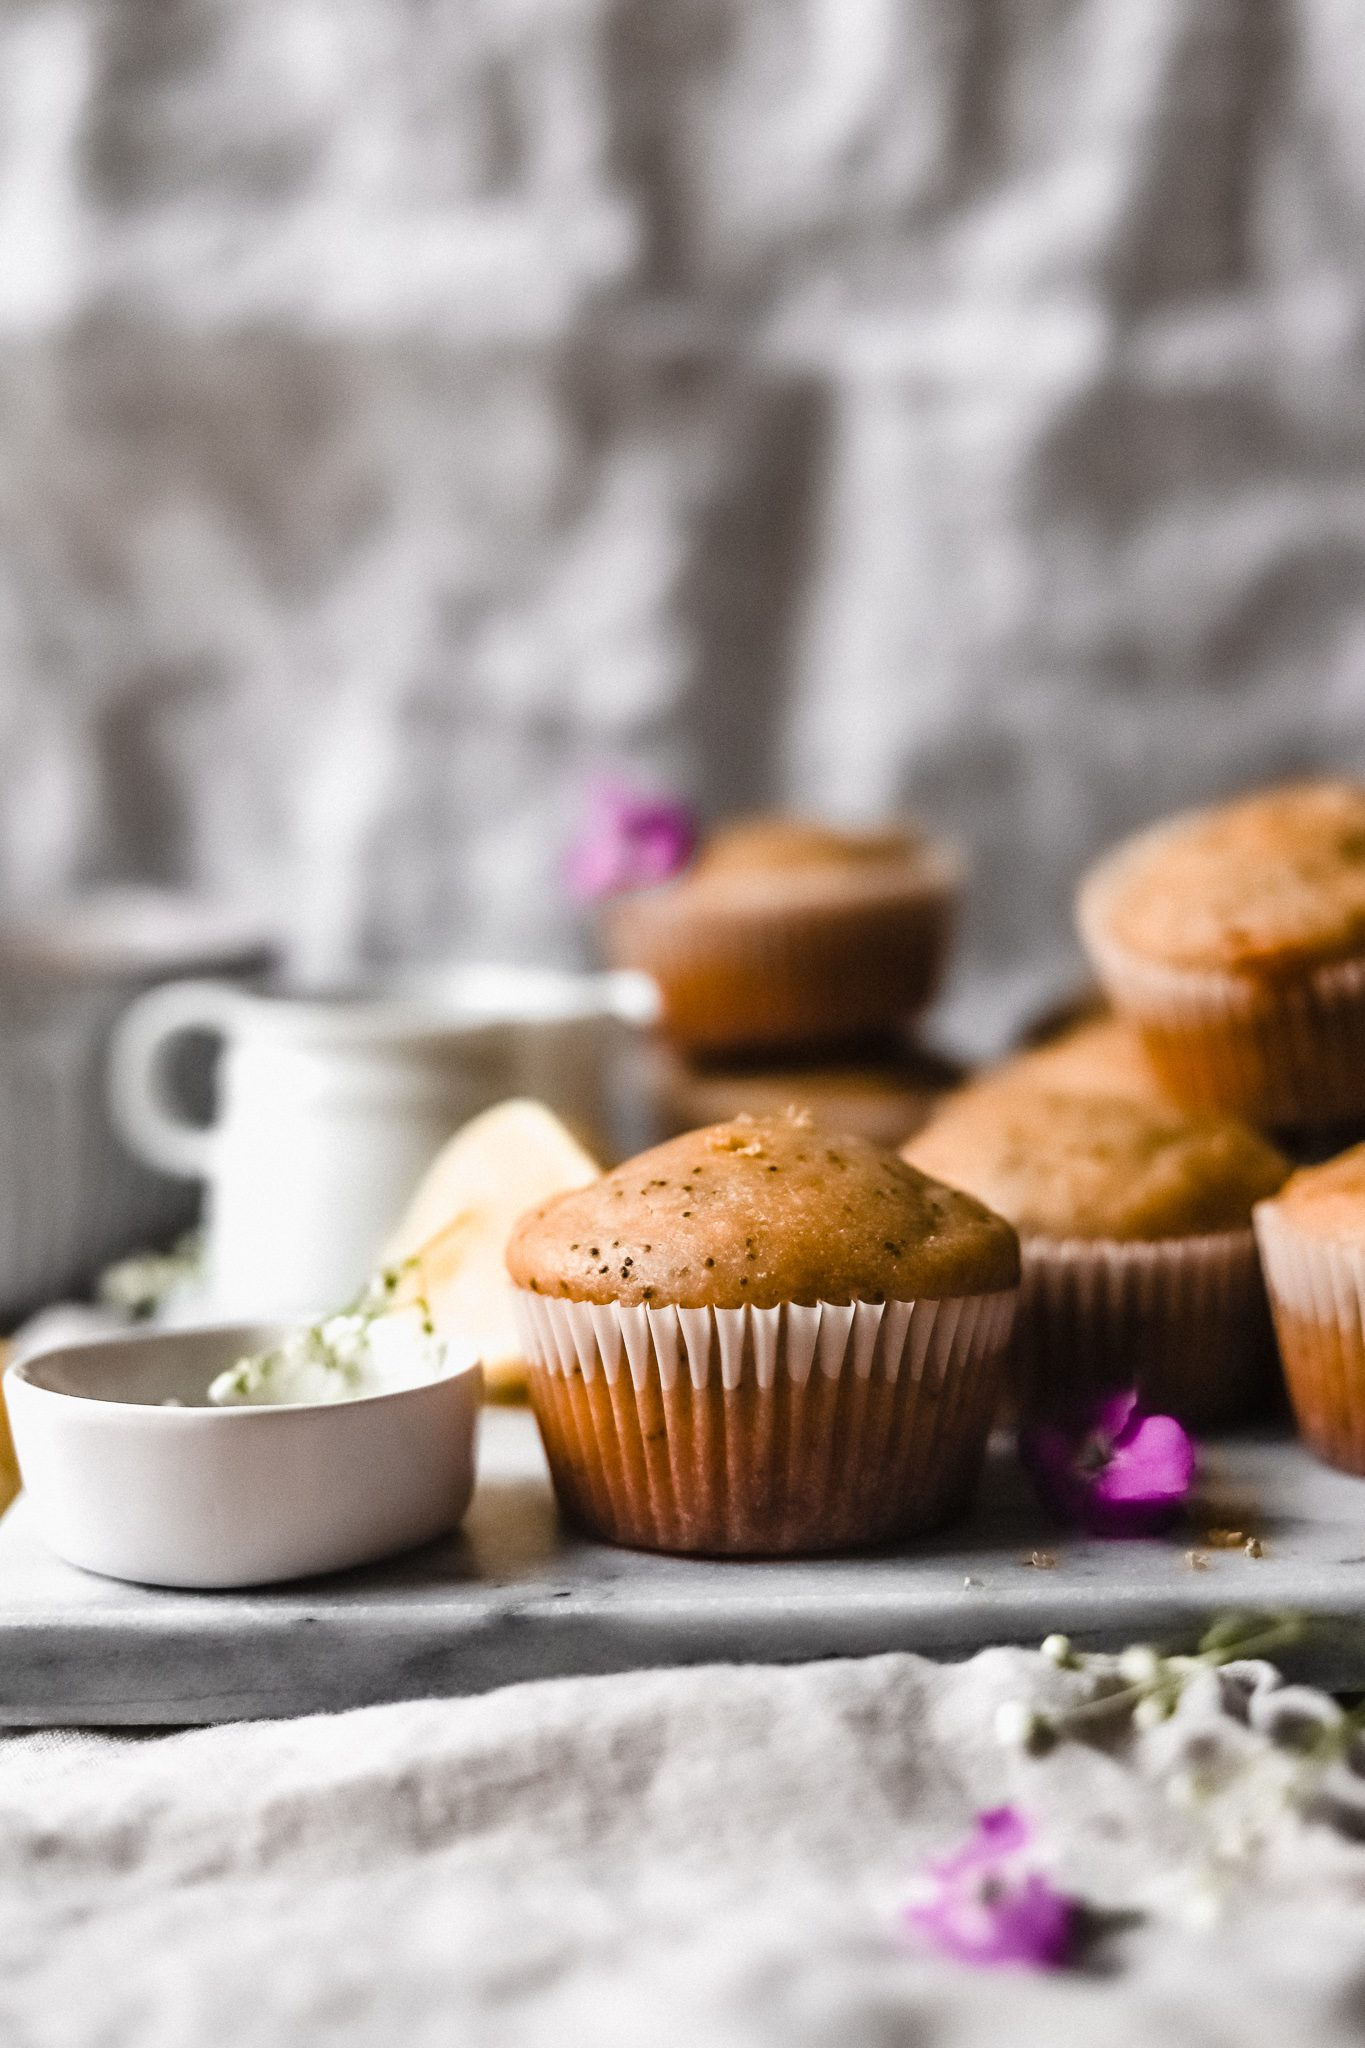 lemon poppy seed muffins with flowers